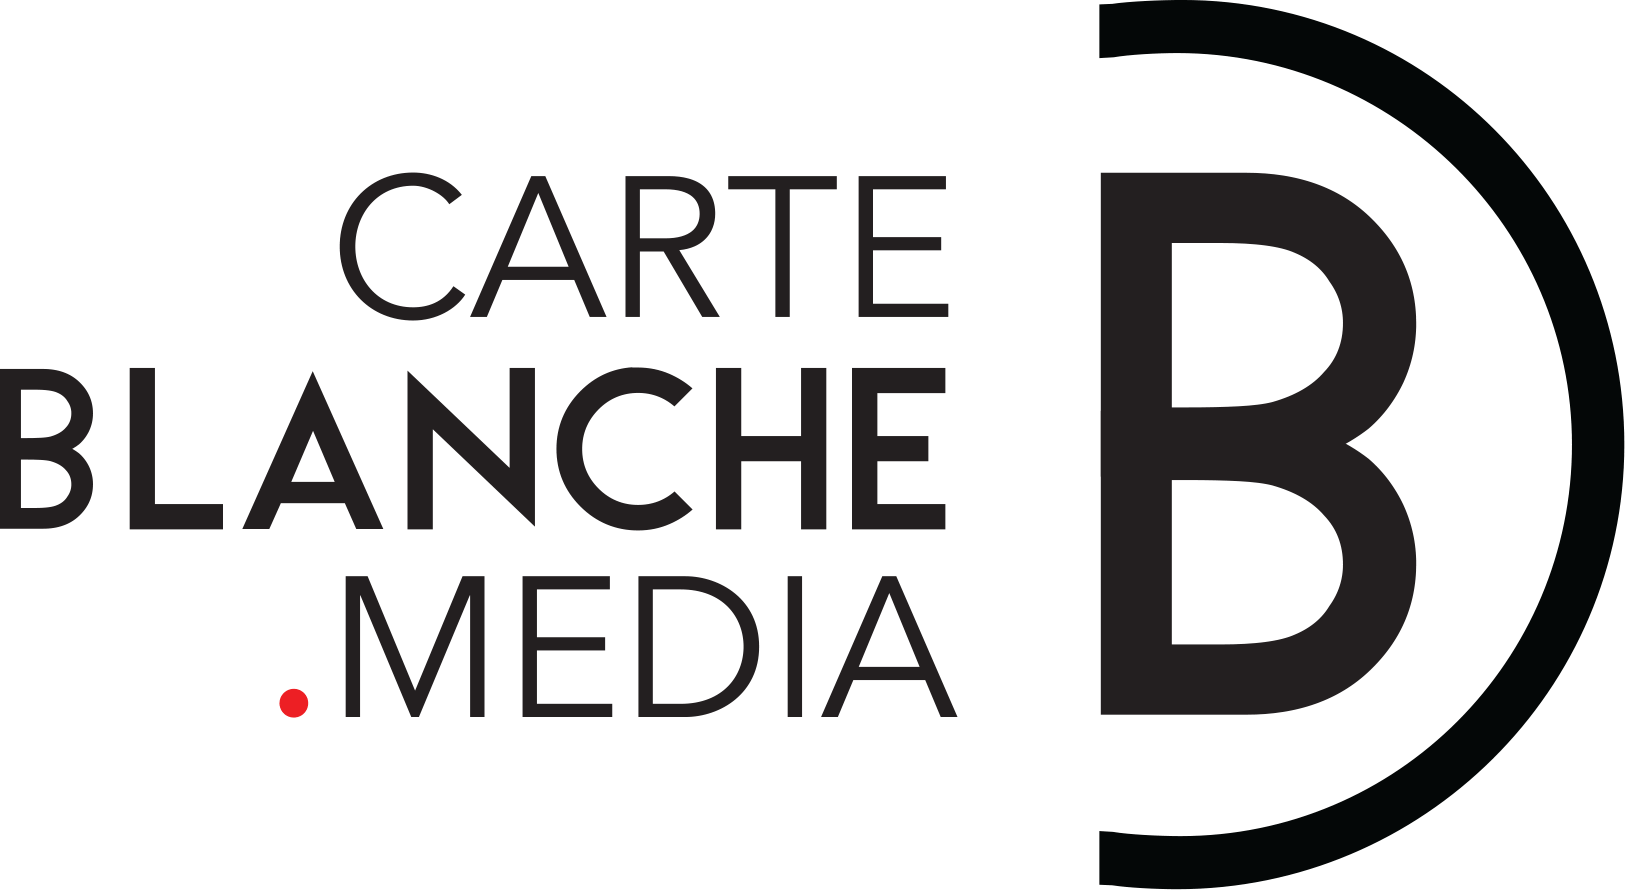 carte blanche online dating On sunday (24th) carte blanche investigates the tongaat building collapse also on the show: thuli madonsela and dating sites that cater to married people.